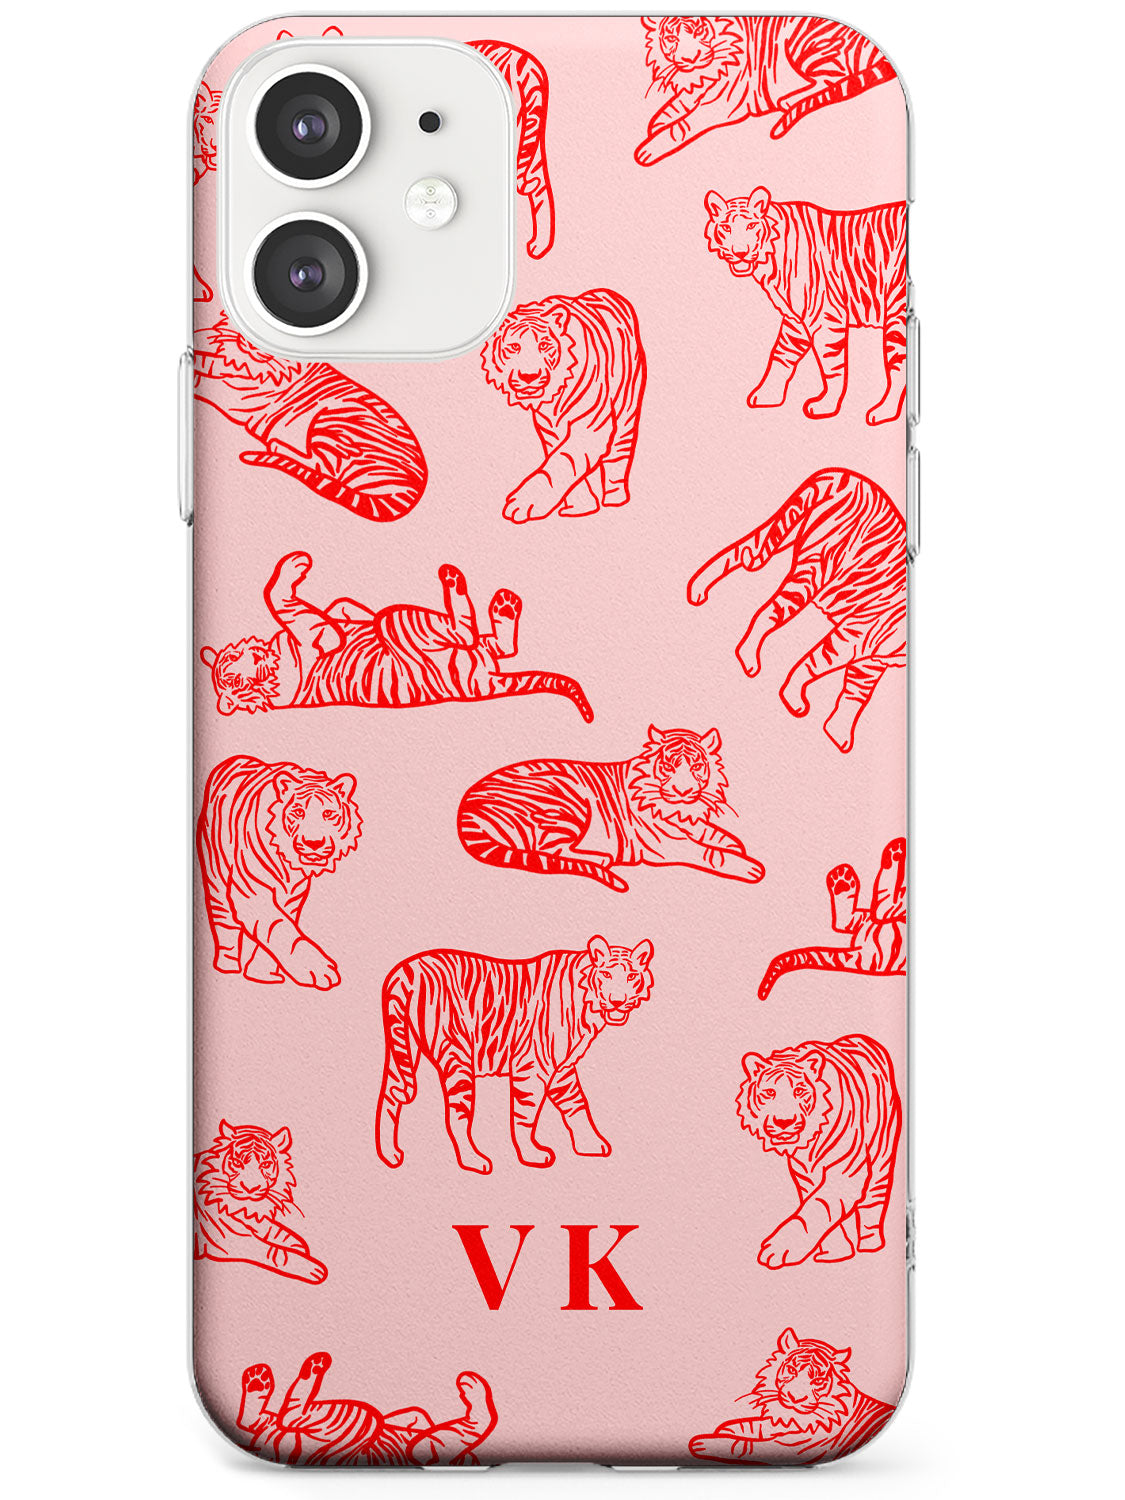 Personalised Red Tiger Outlines on Pink iPhone Case by Case Warehouse ®